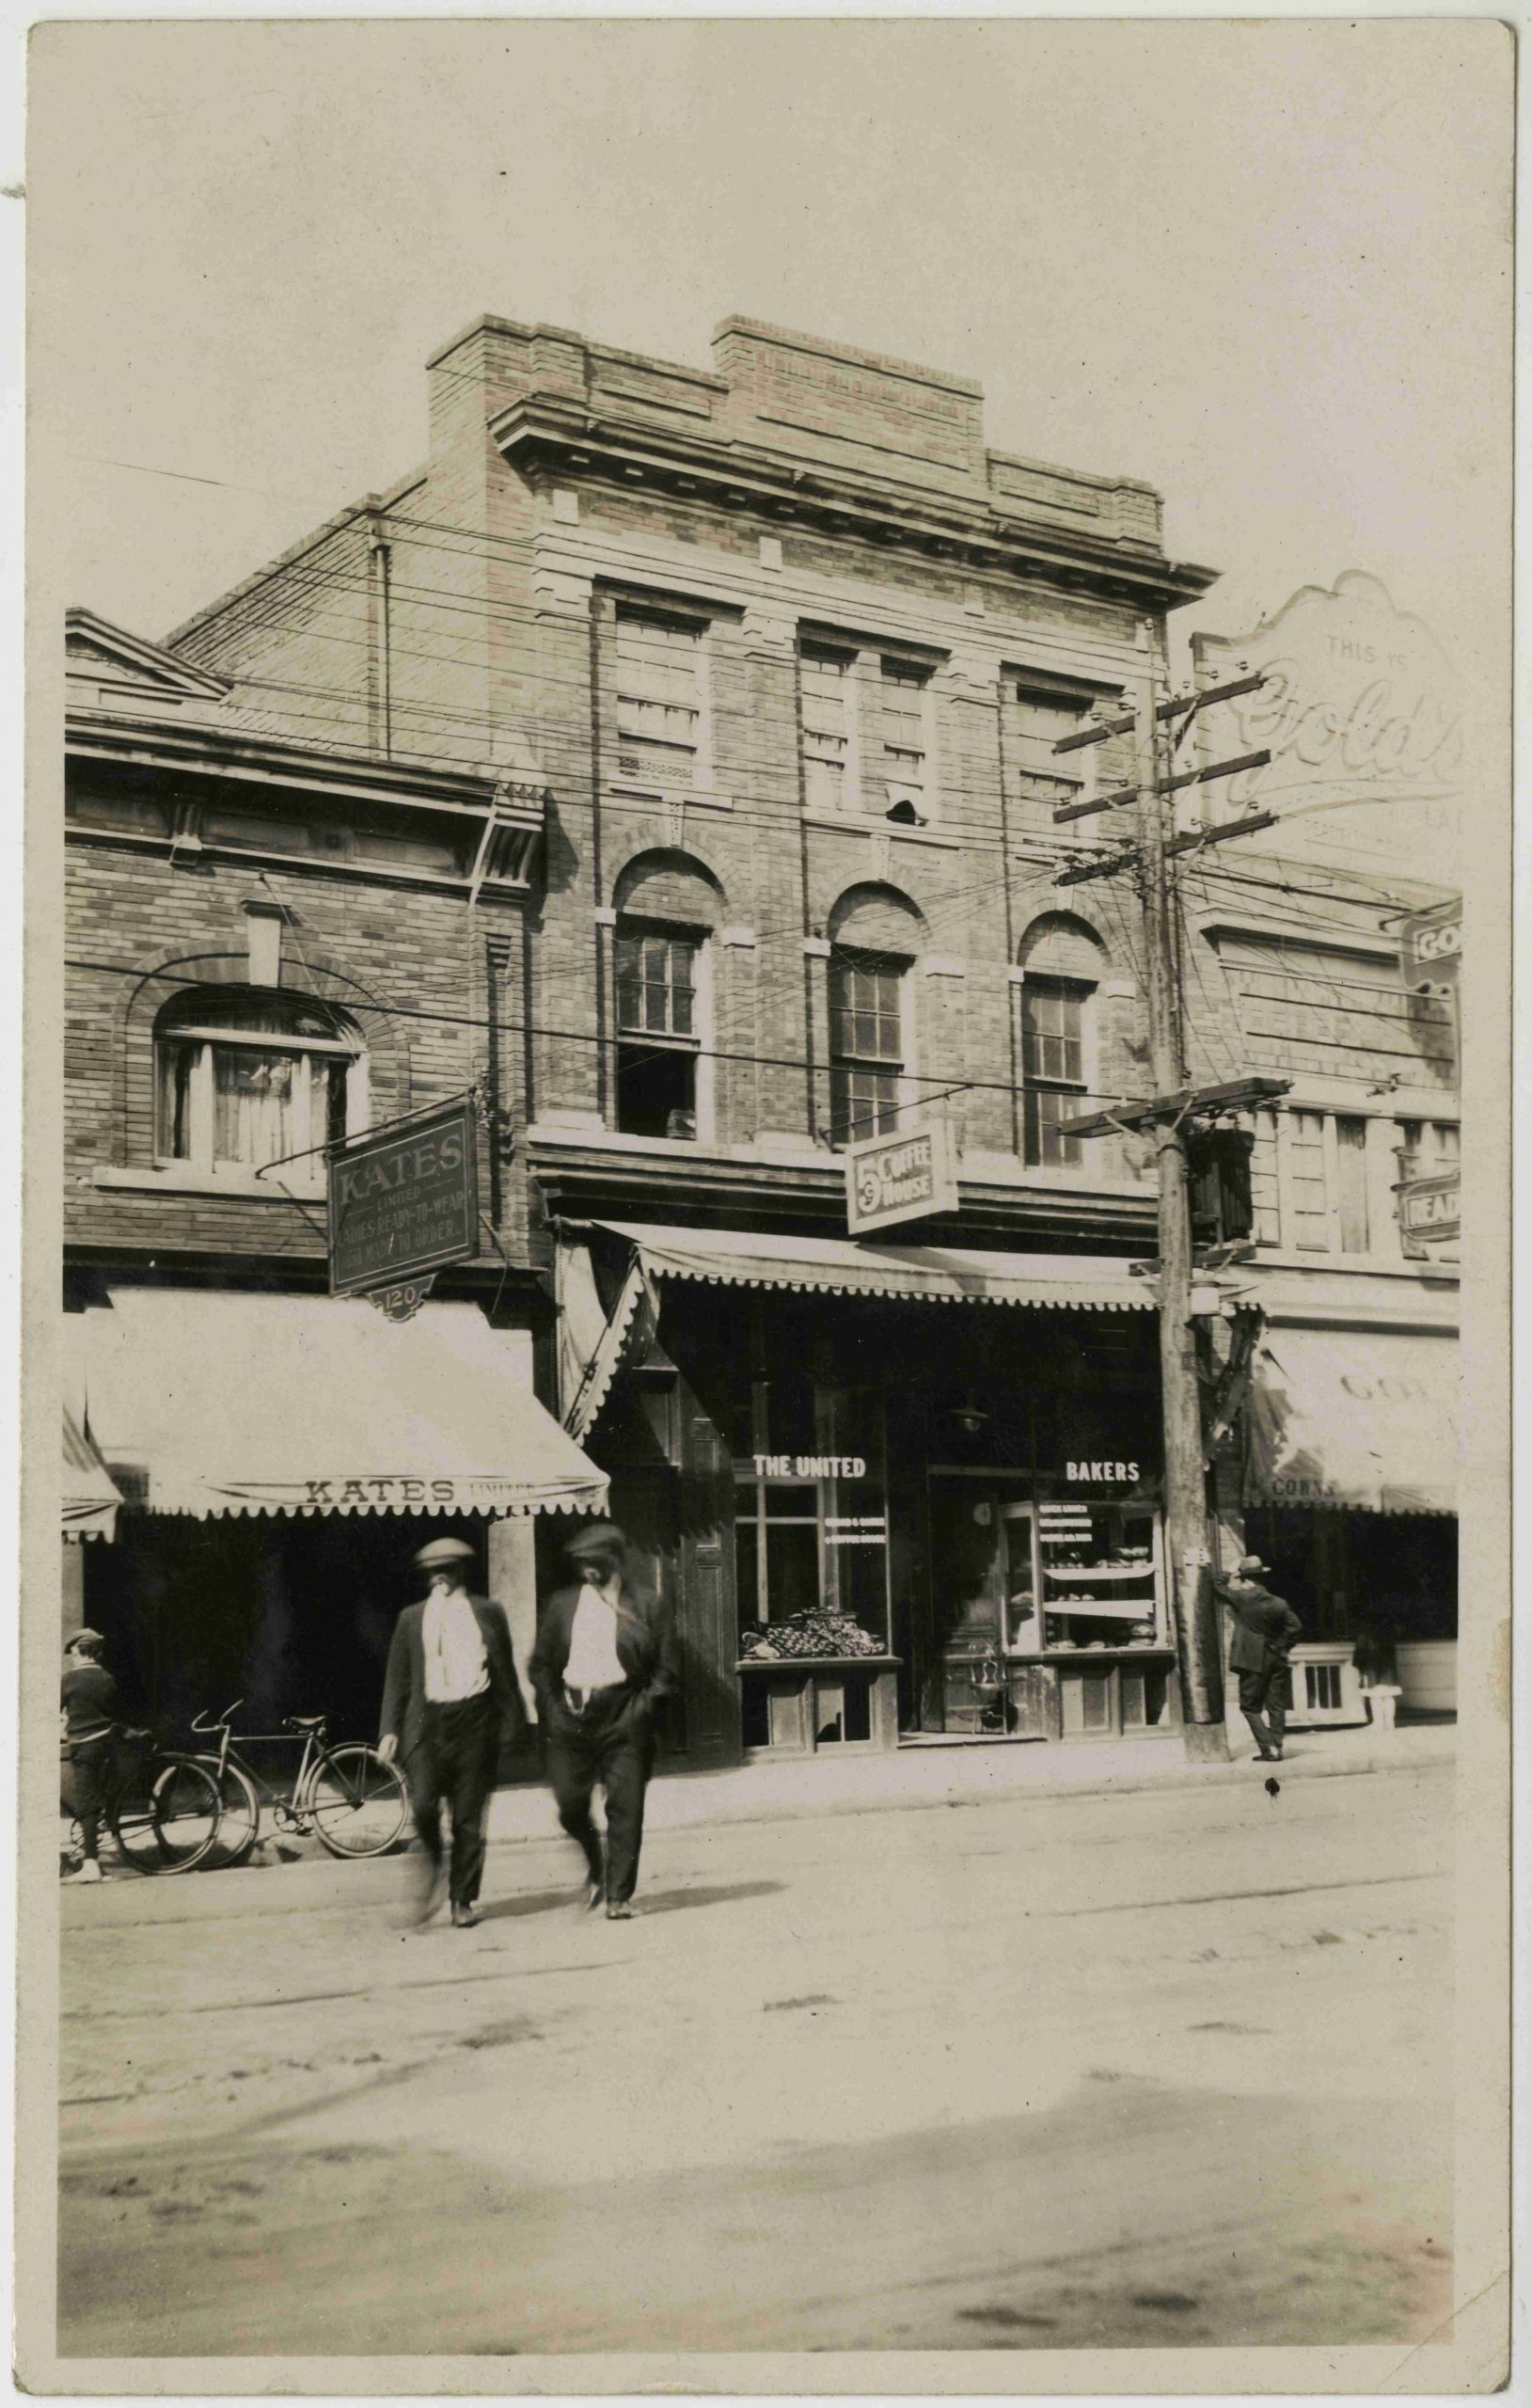 Dundas Street just west of Bay Street, ca. 1915. Back then Dundas Street was known as Agnes Street and Bay Street was known as Terauley Street. In this photograph you can see the storefront windows for the first location of United Bakers at 156 Agnes Street.    OJA, fonds 27, series 4, file 2.